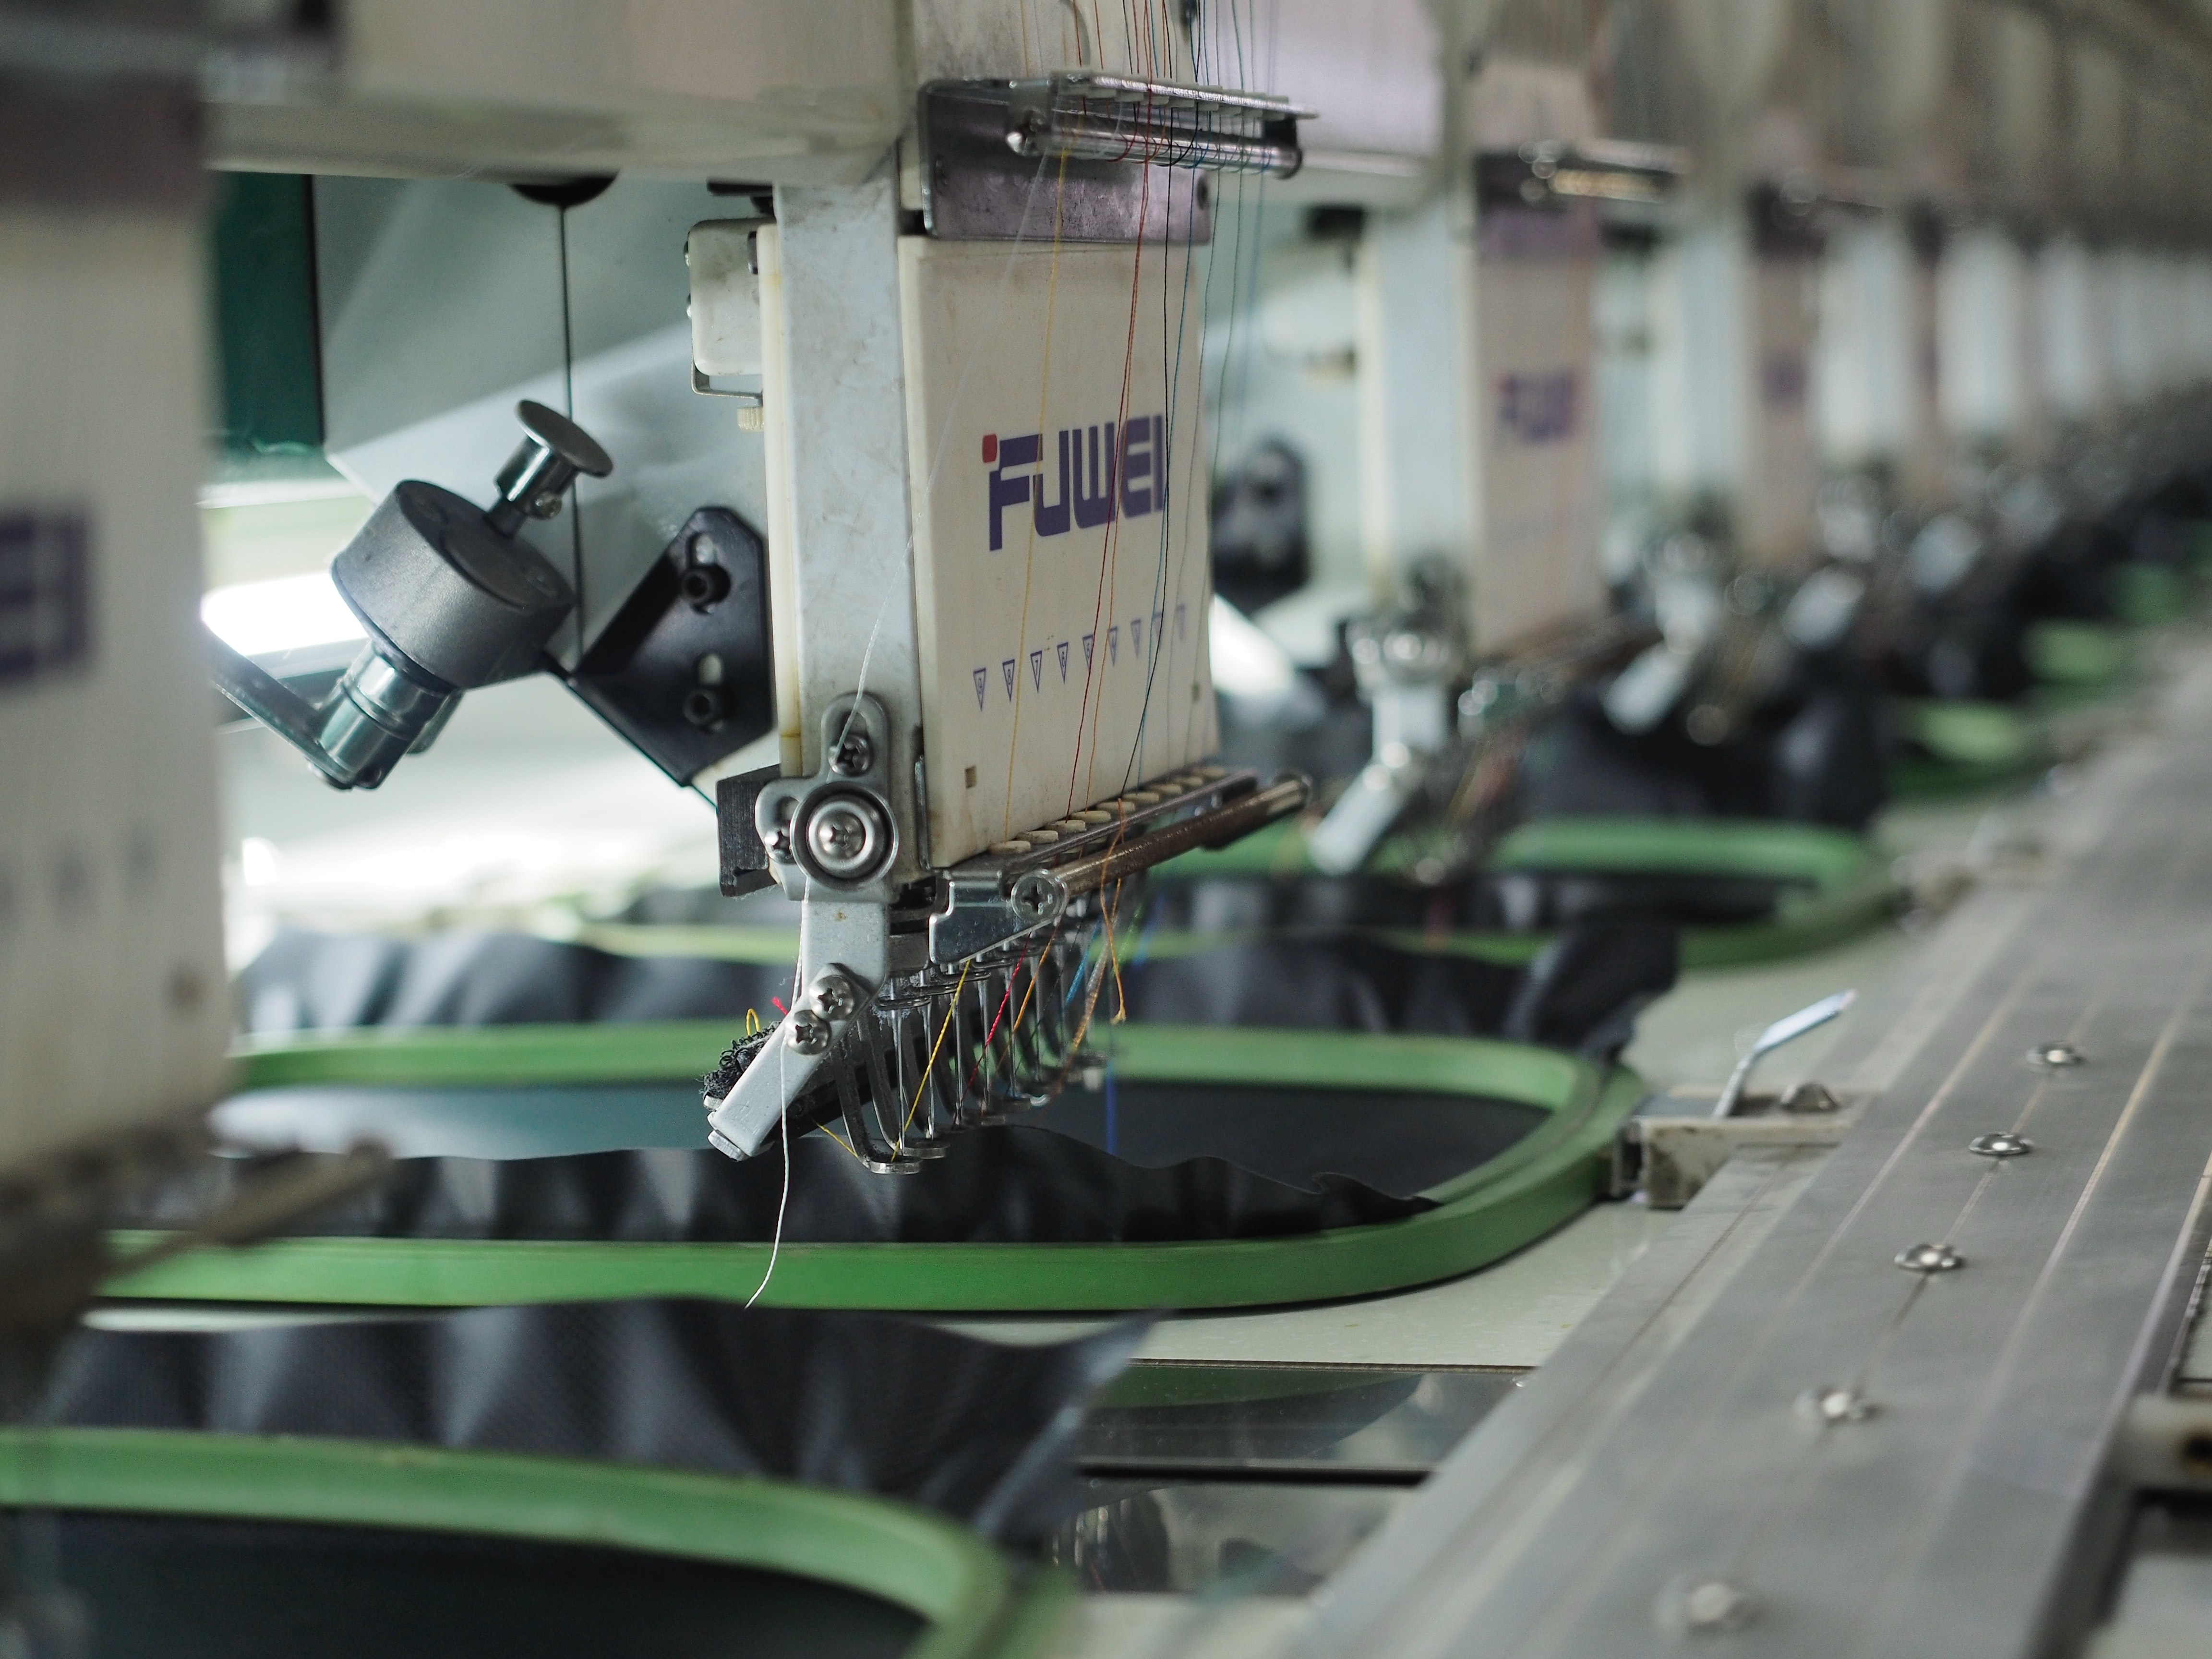 machinery at a clothing factory in Jakarta, Indonesia